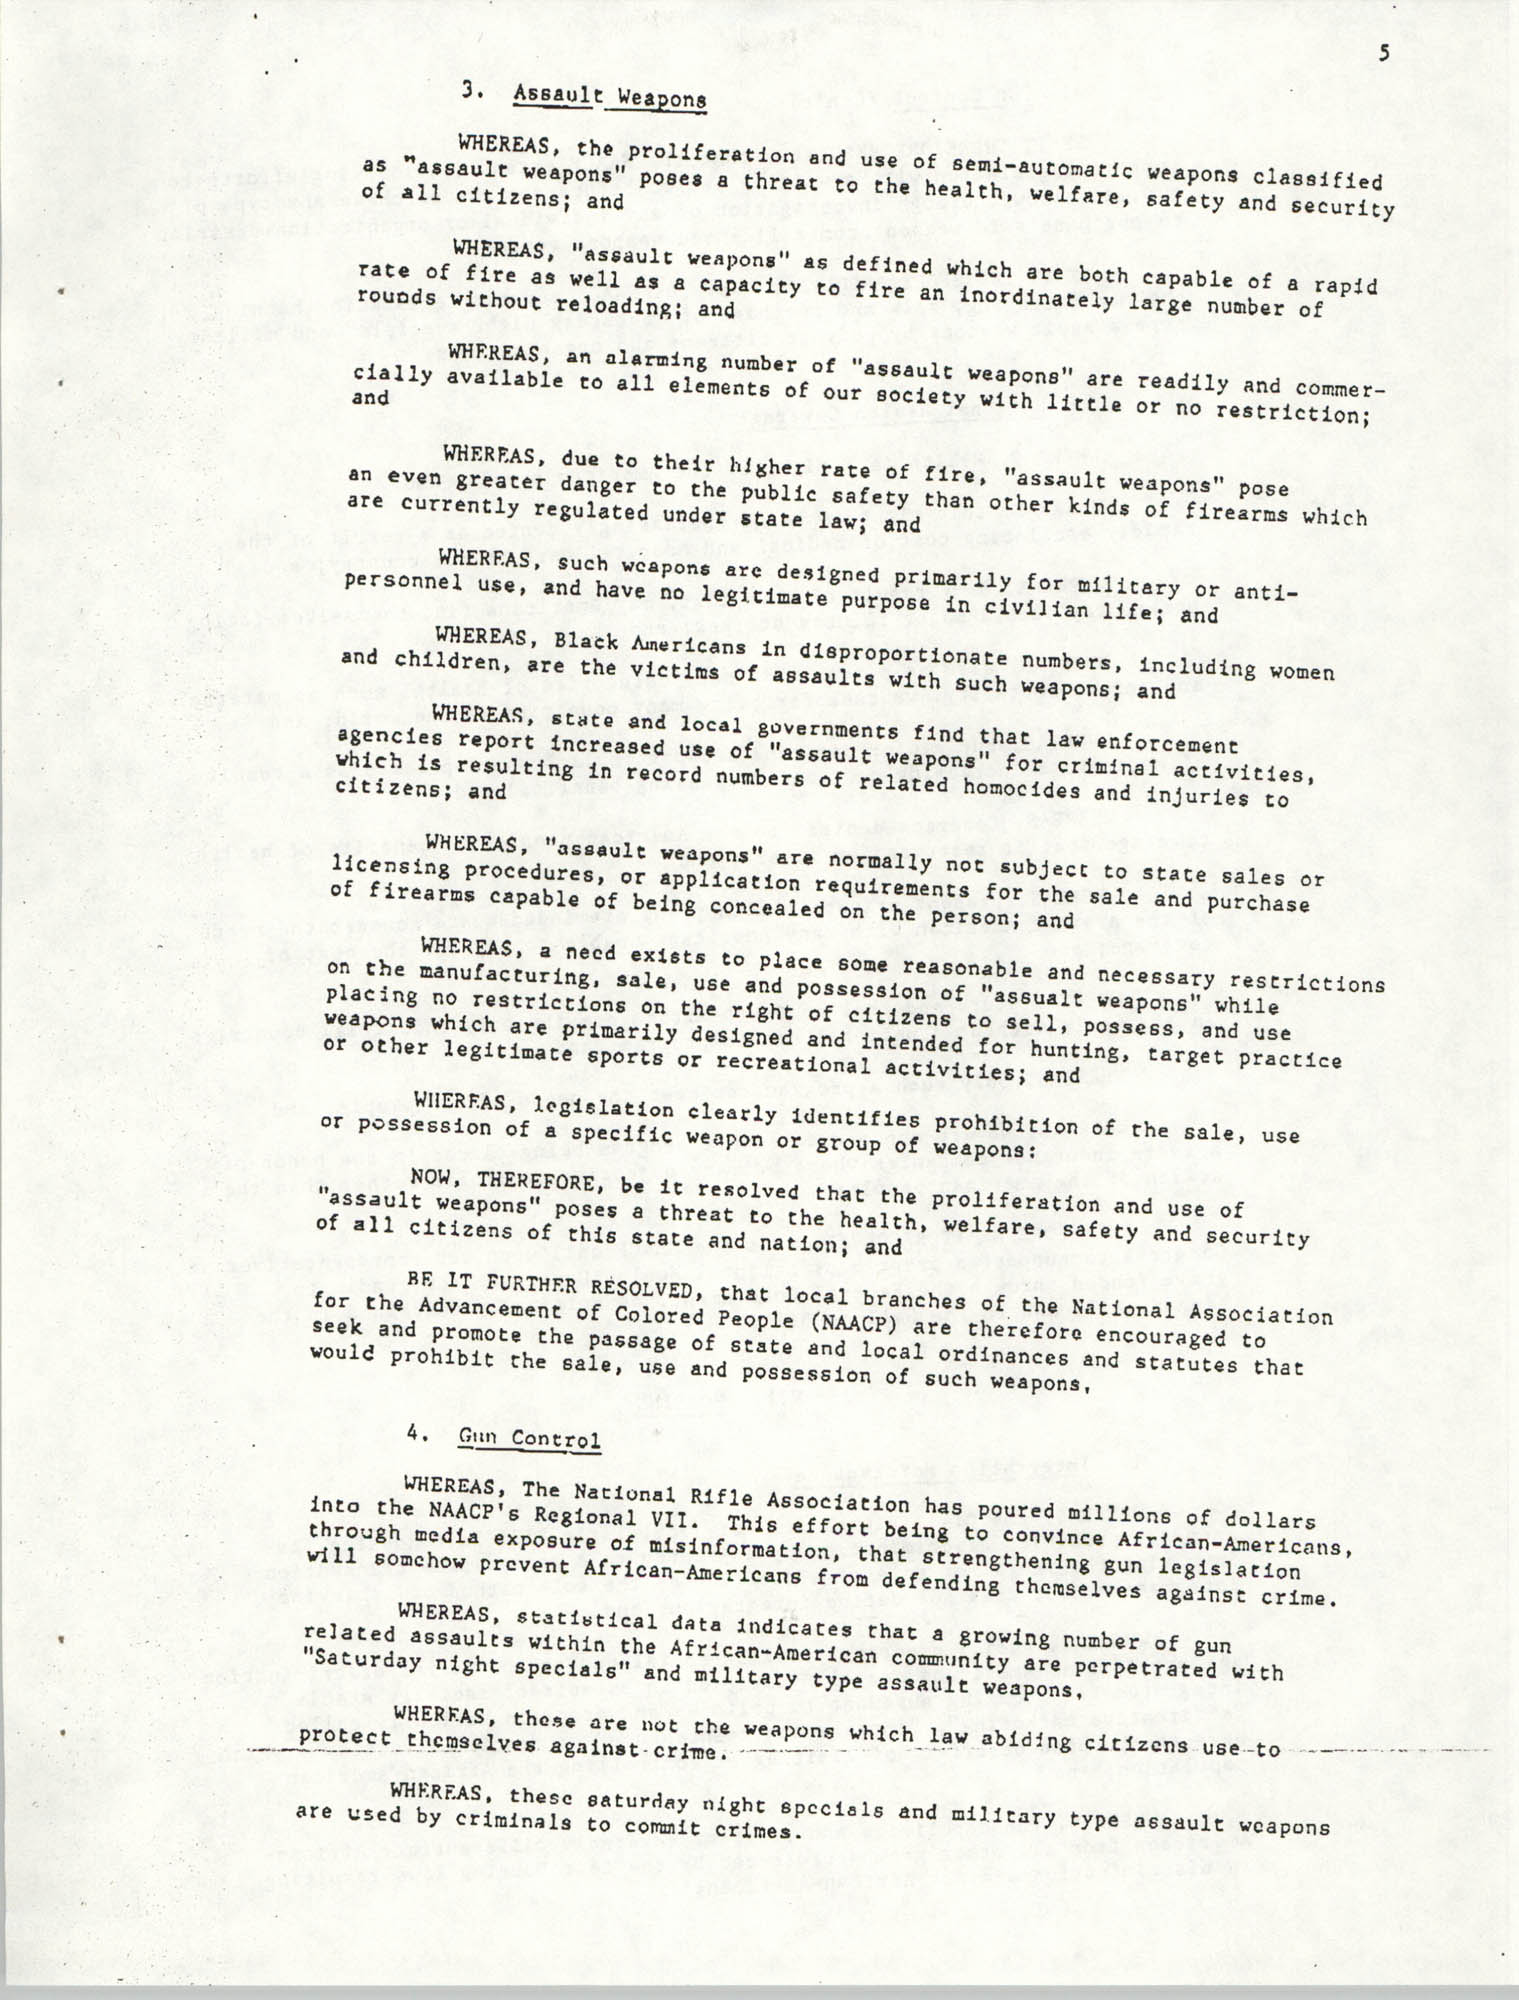 Resolutions Submitted Under Article X, Section 2 of the Constitution of the NAACP, Page 5